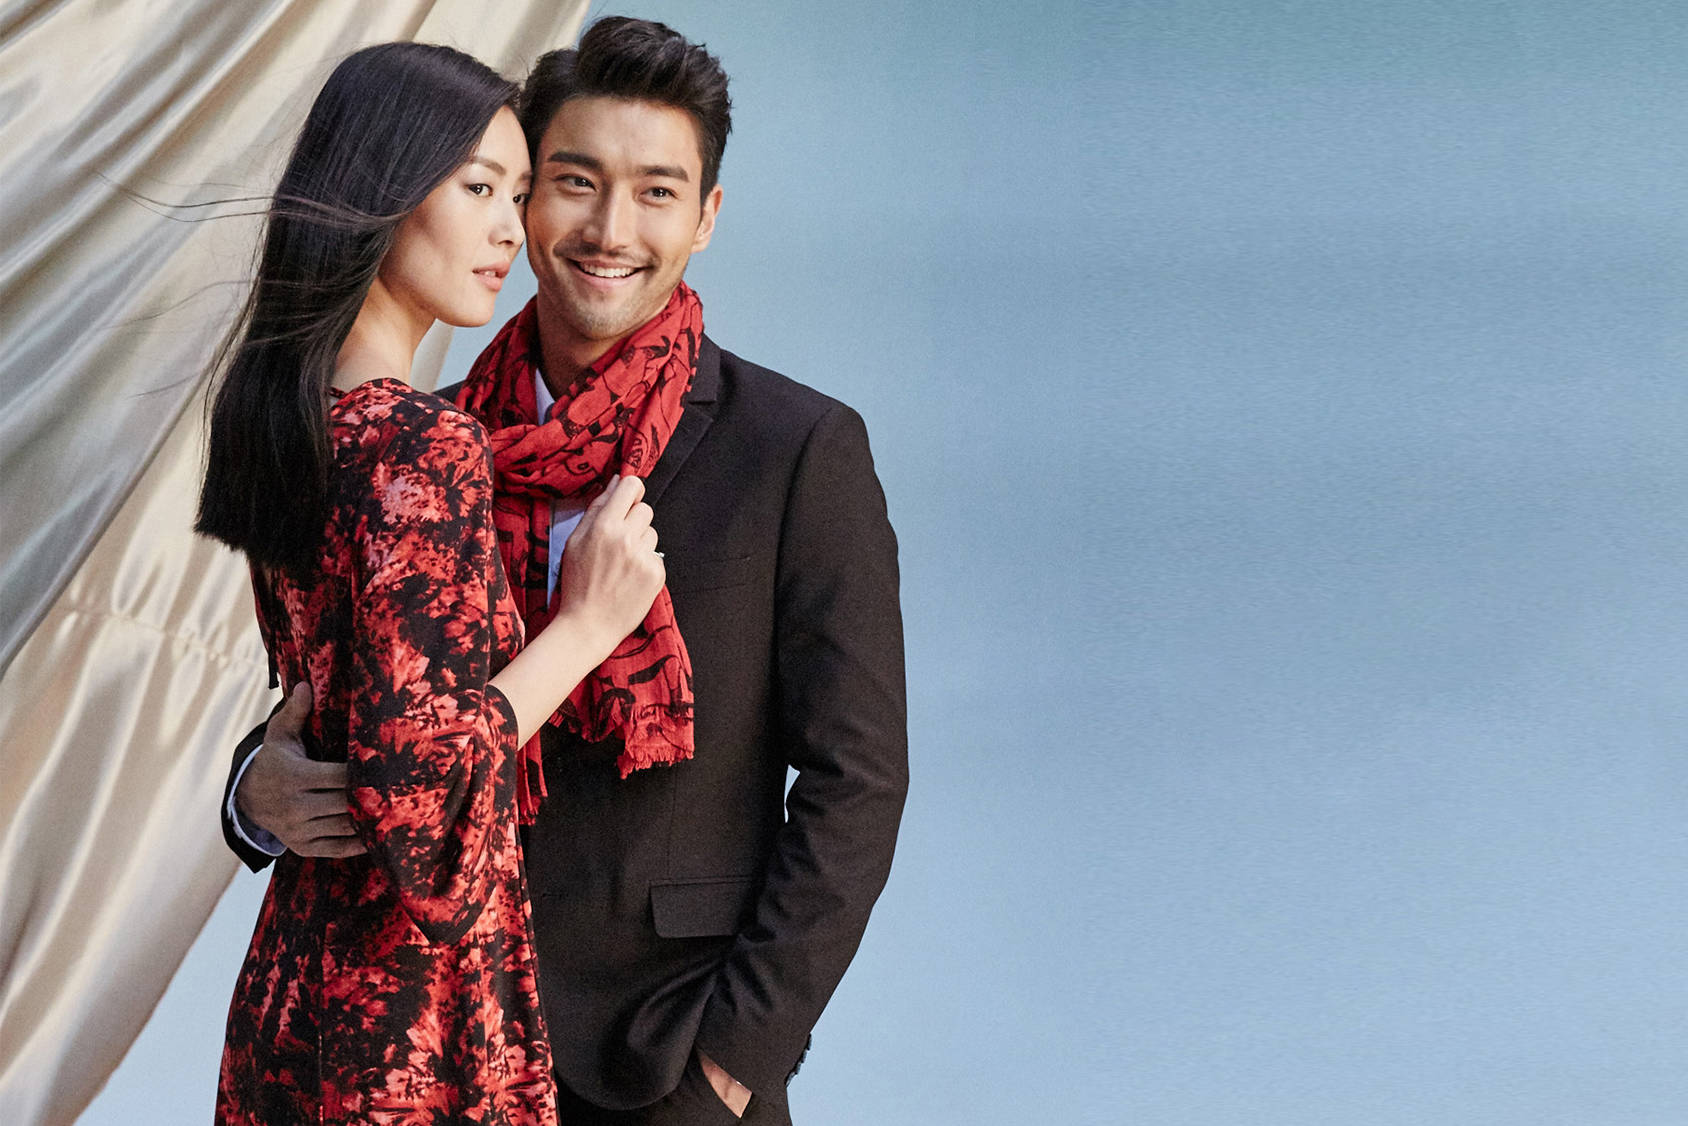 Supermodel Liu Wen and singer/actor Siwon Choi are the faces of this year's H&M Chinese New Year campaign.